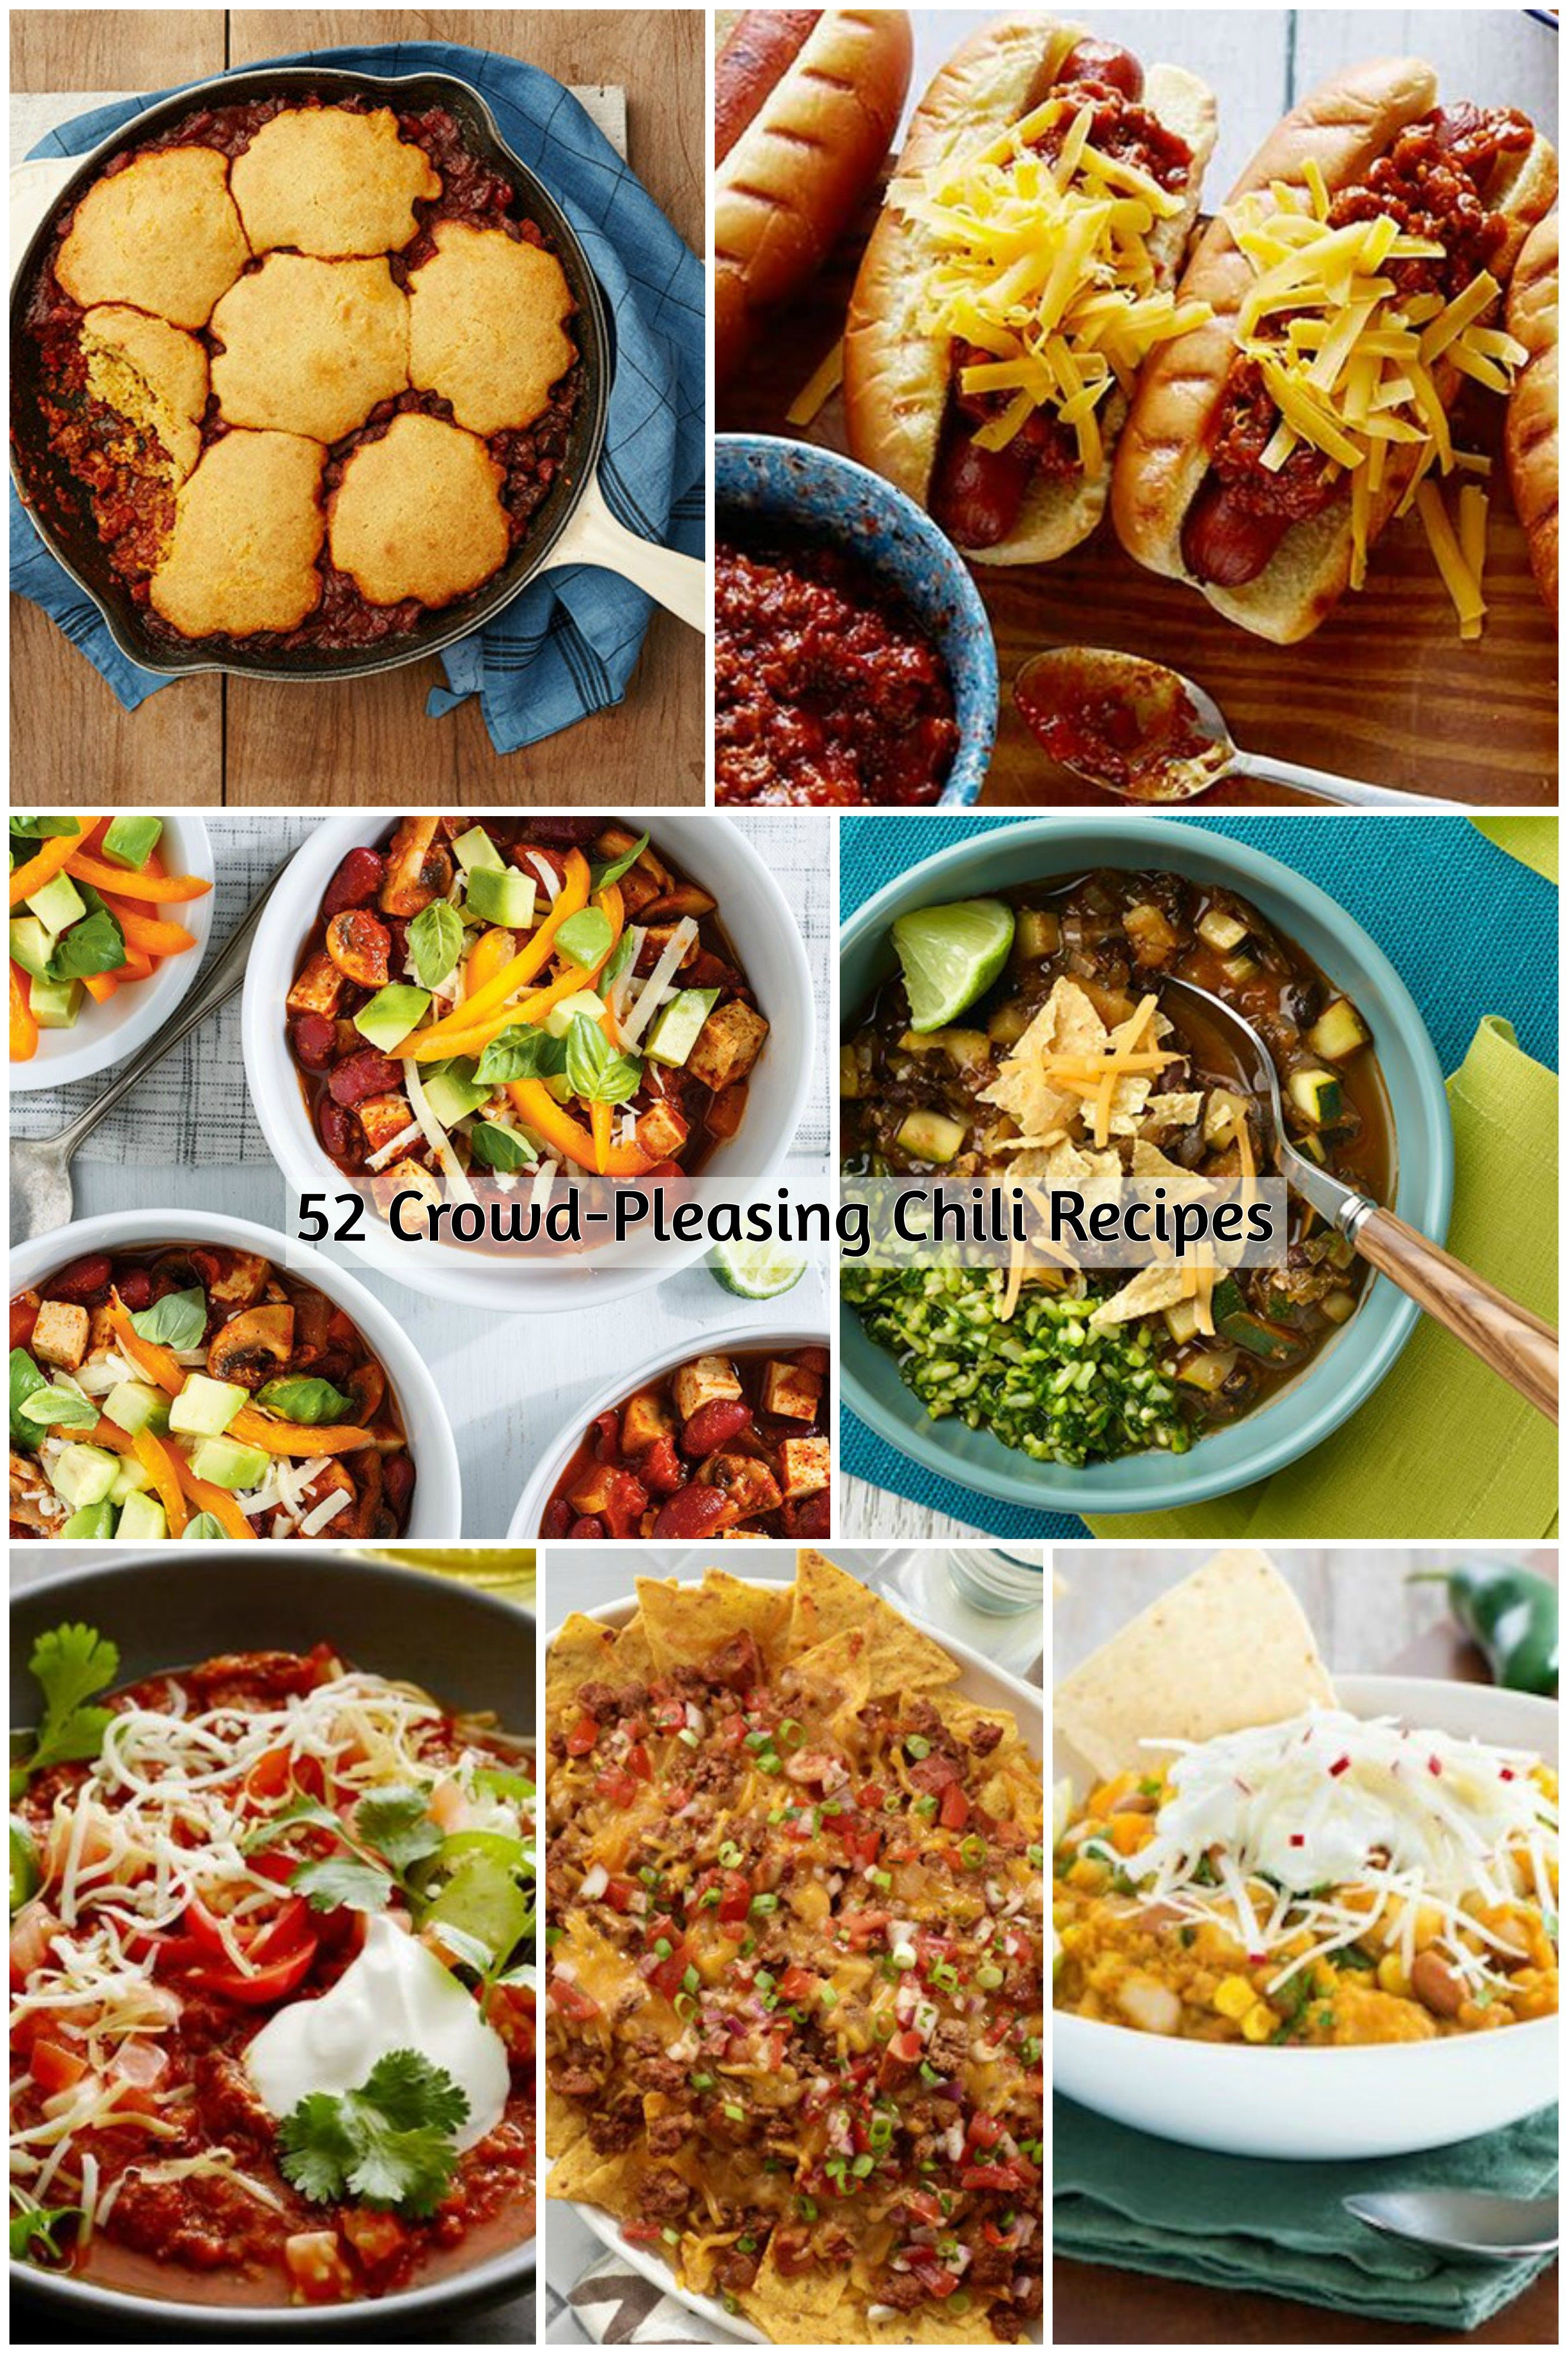 55 Crowd Pleasing Chili Recipes Food Network Canada Food Network Recipes Best Chili Recipe Chili Recipes